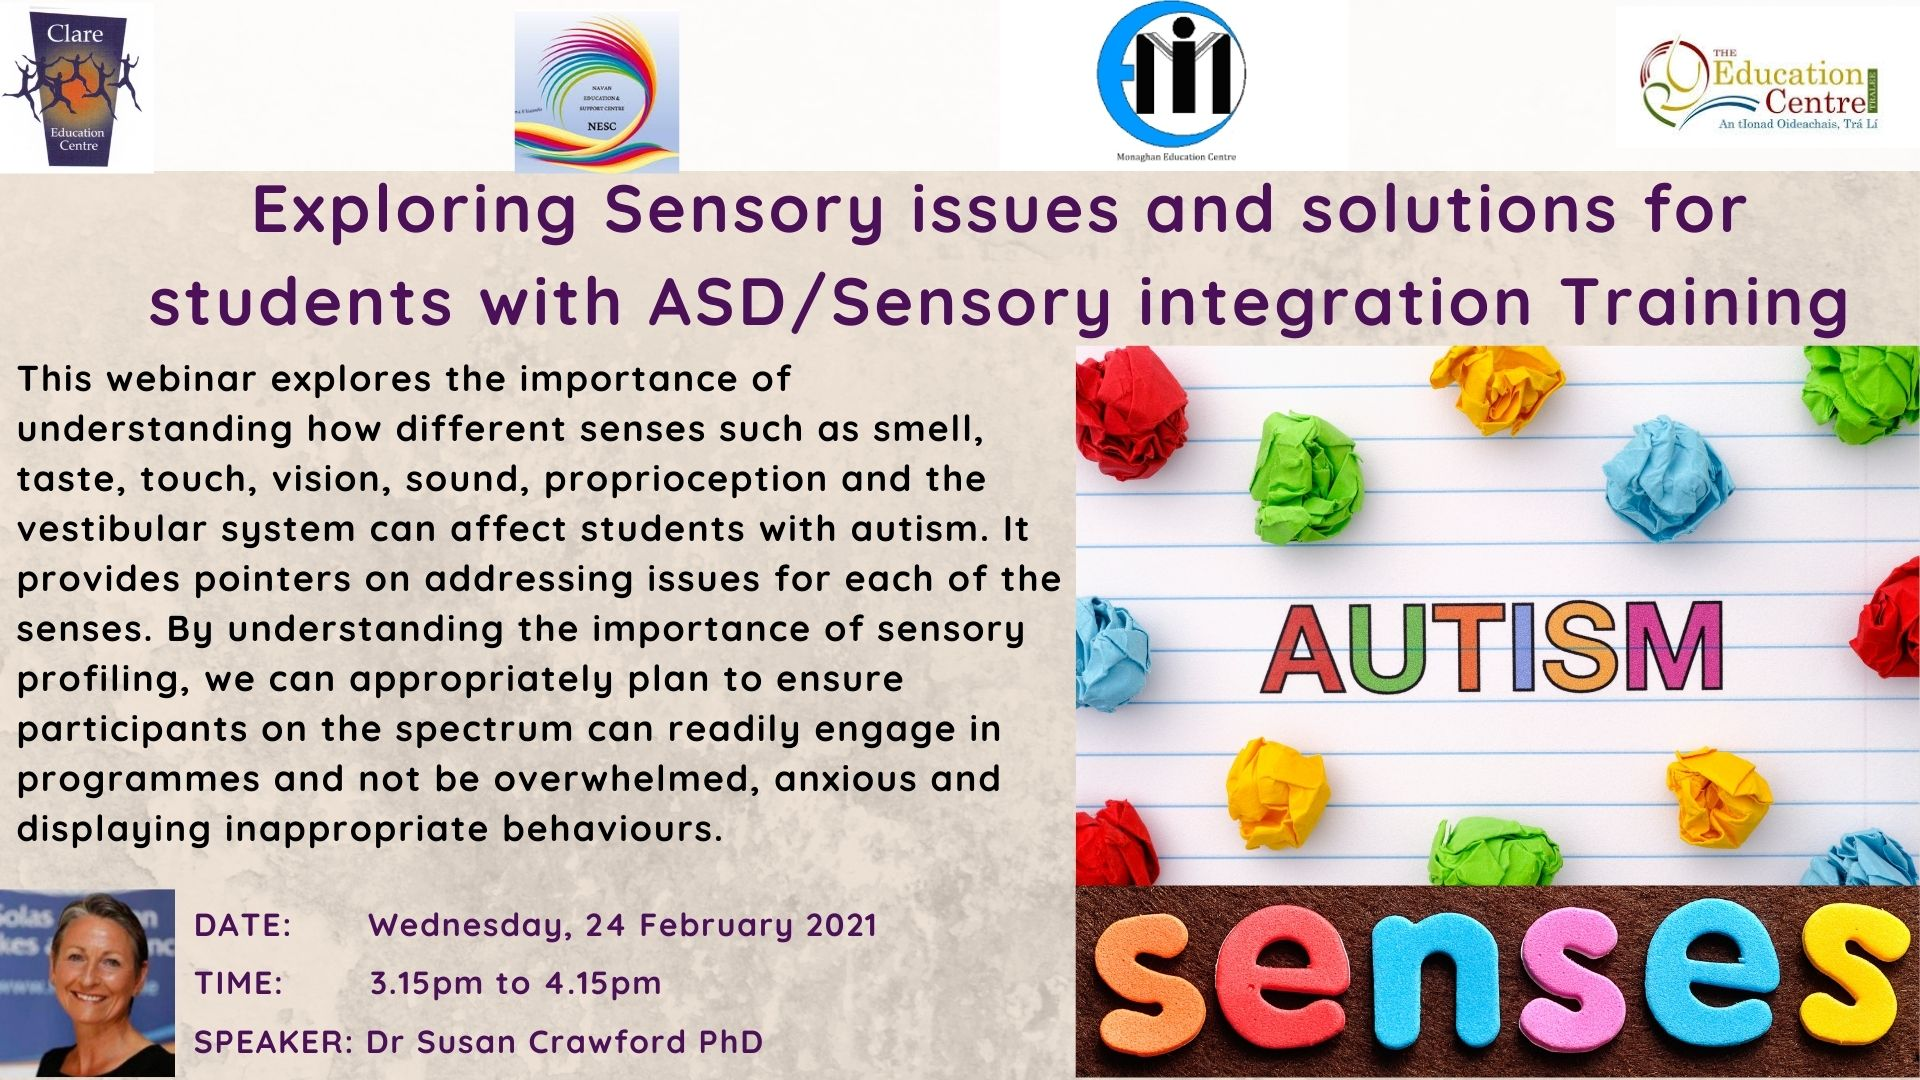 Feb 24 Exploring Sensory issues and solutions